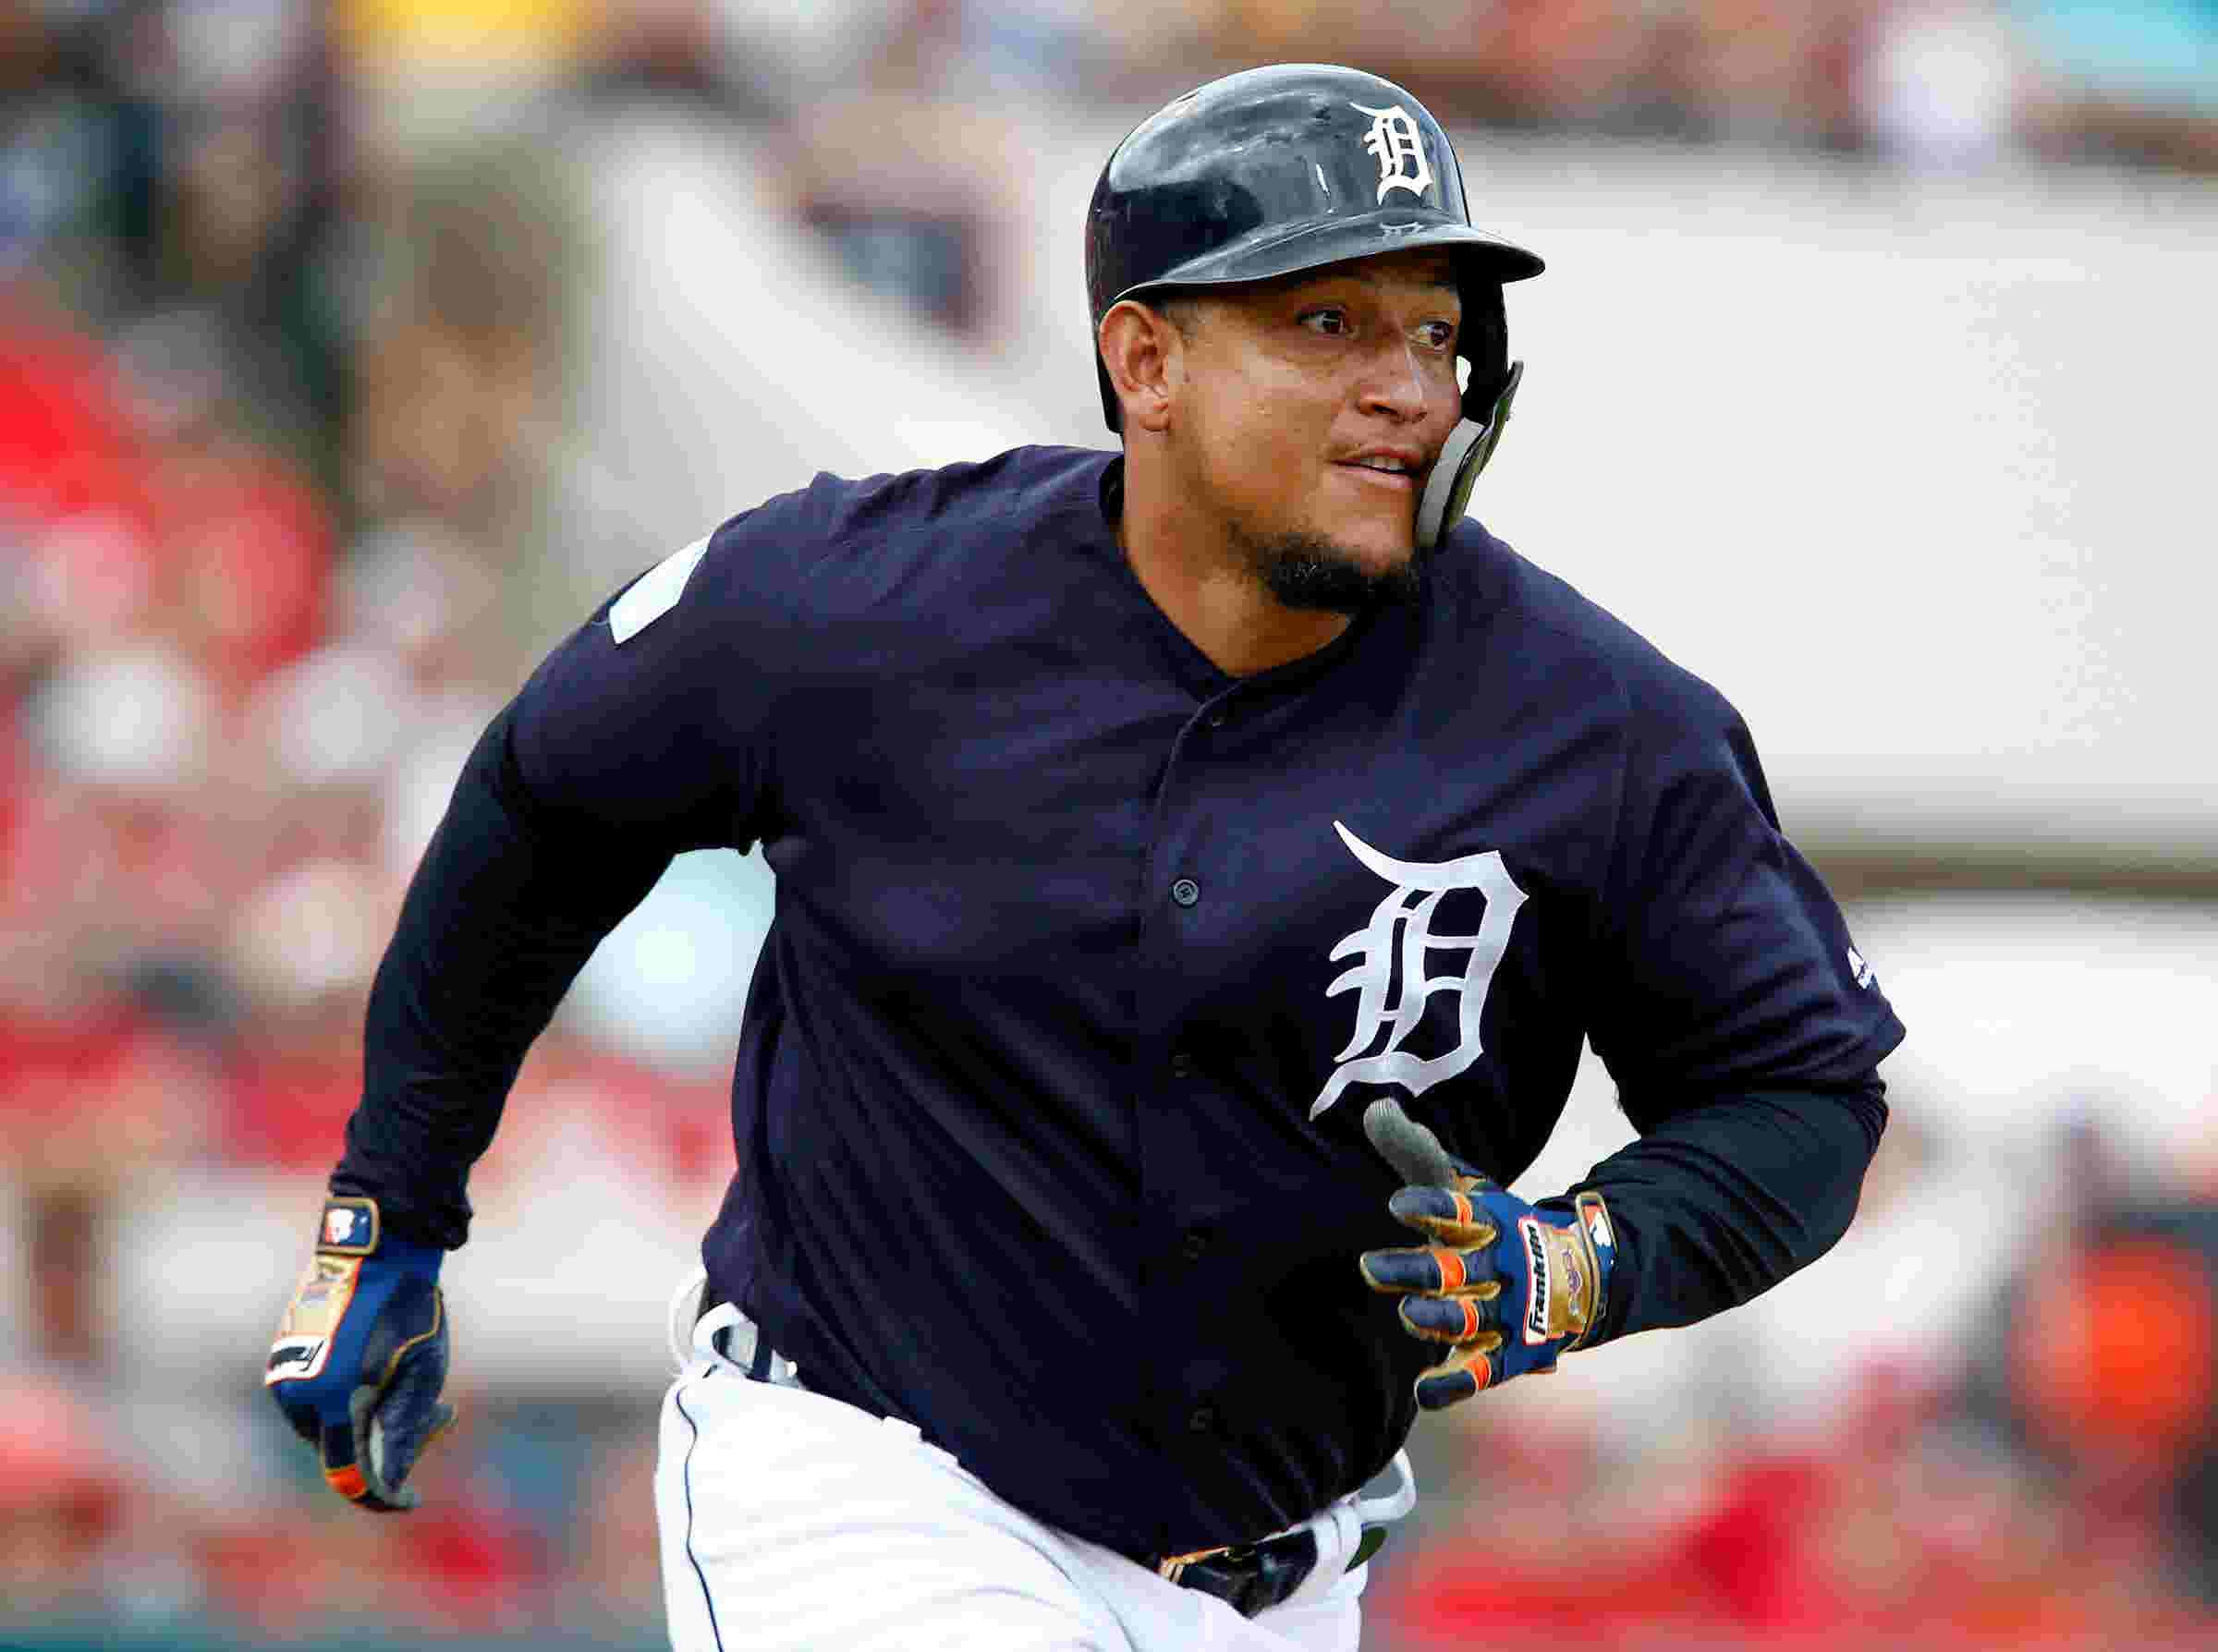 Miguel Cabrera finally gets shot at Justin Verlander: 'Just another day'